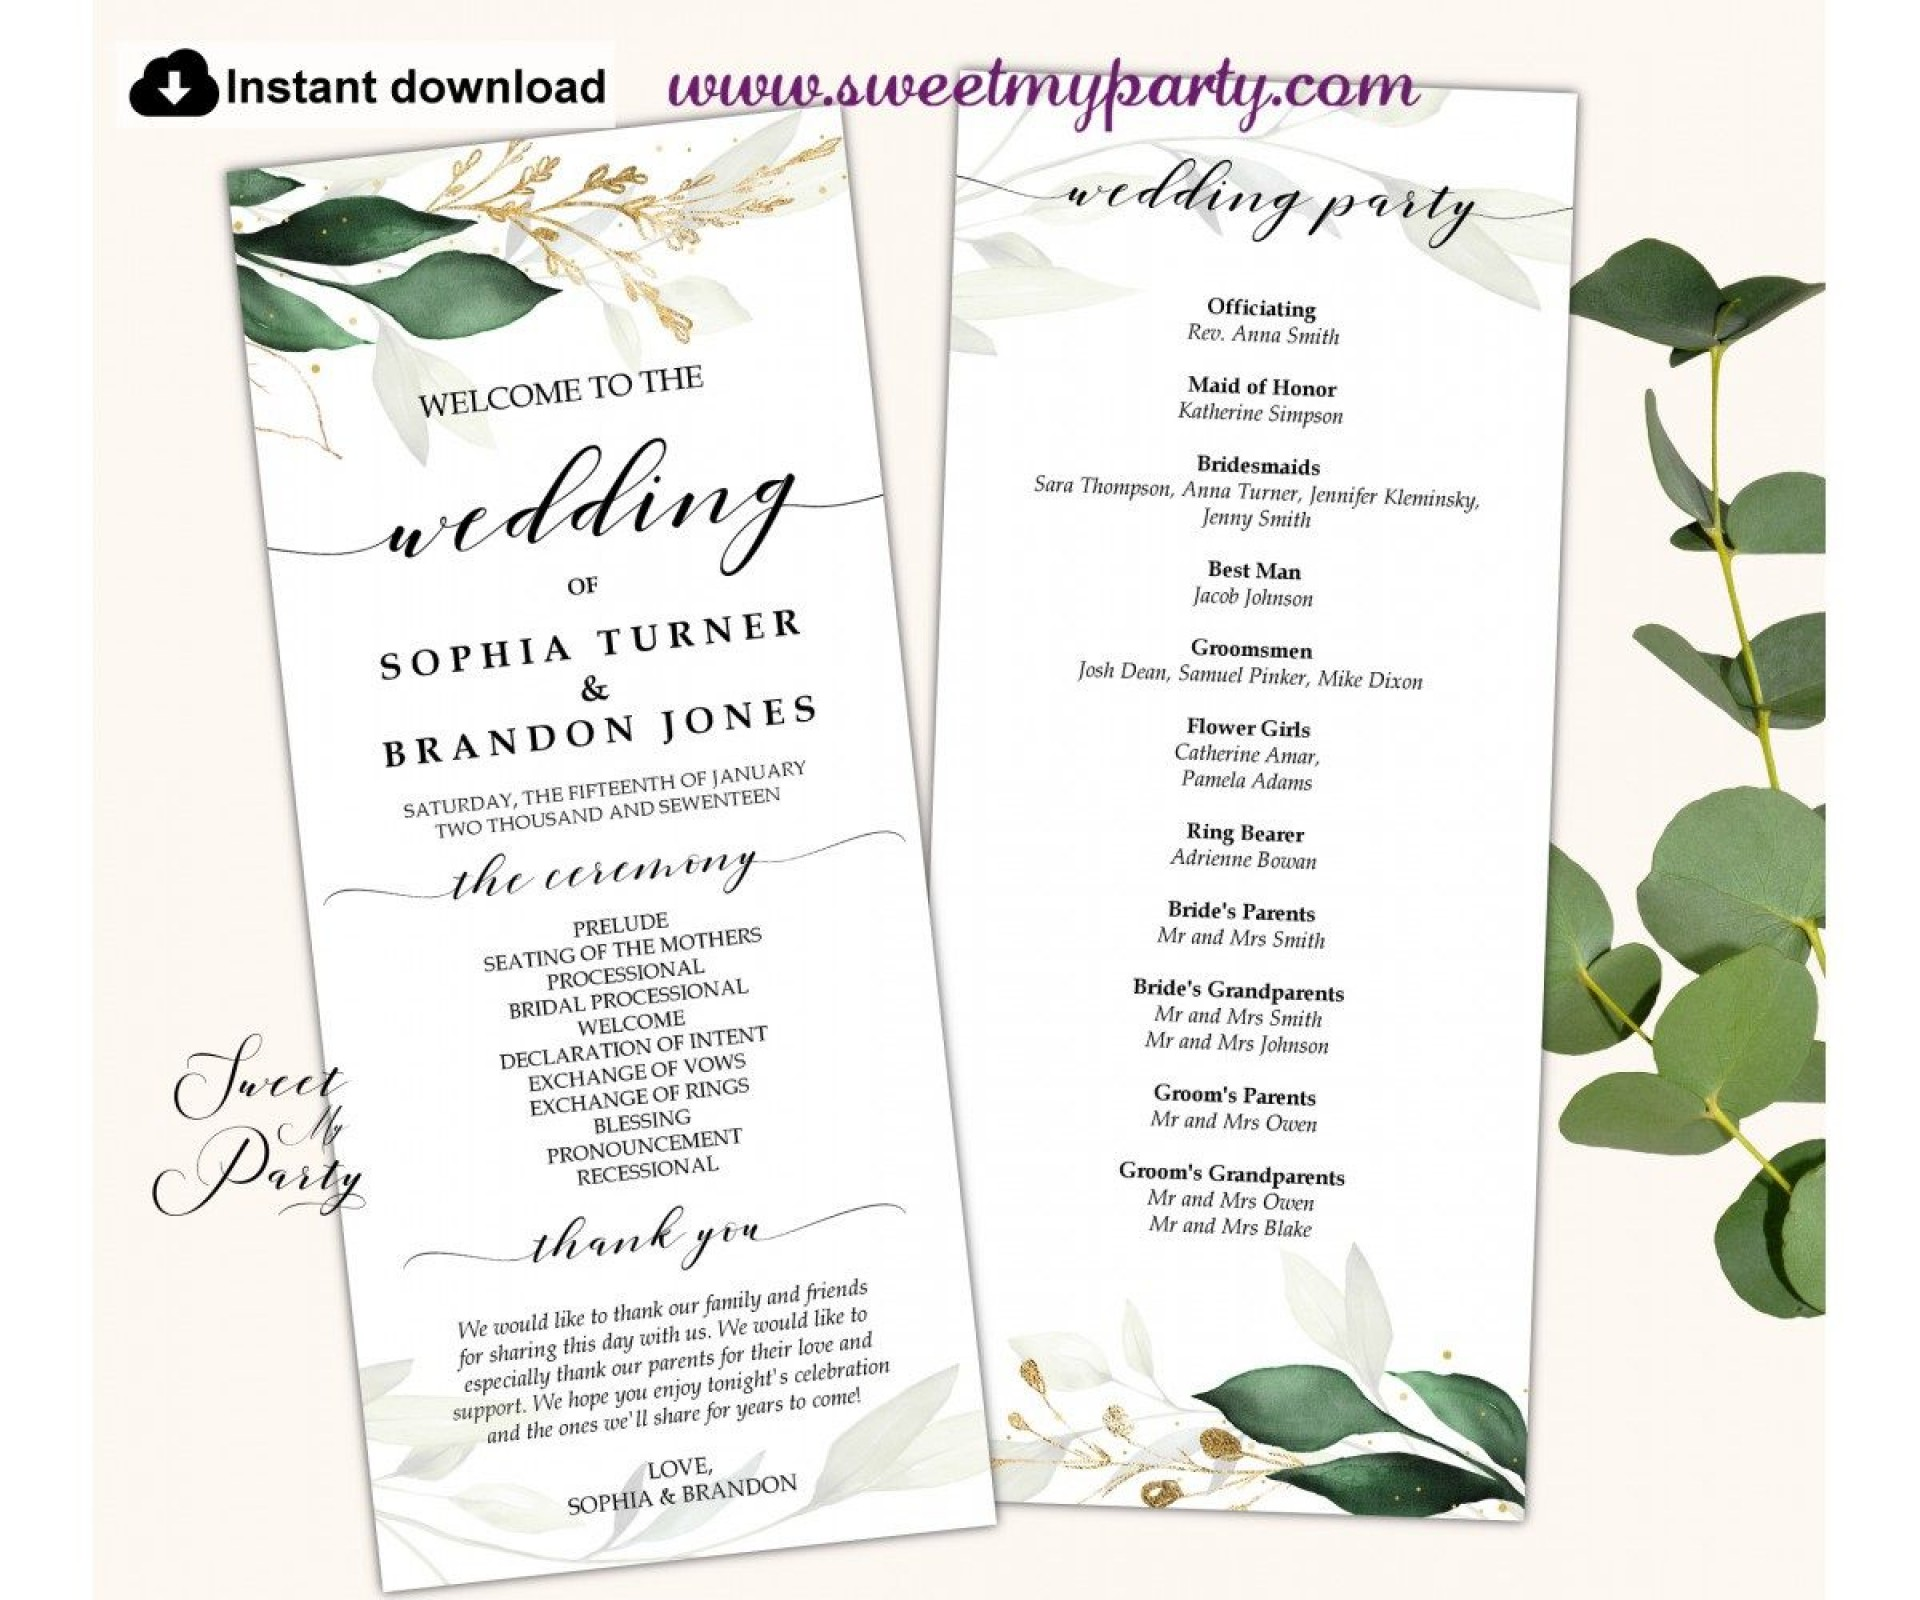 007 Wonderful Wedding Order Of Service Template Pdf High Definition 1920